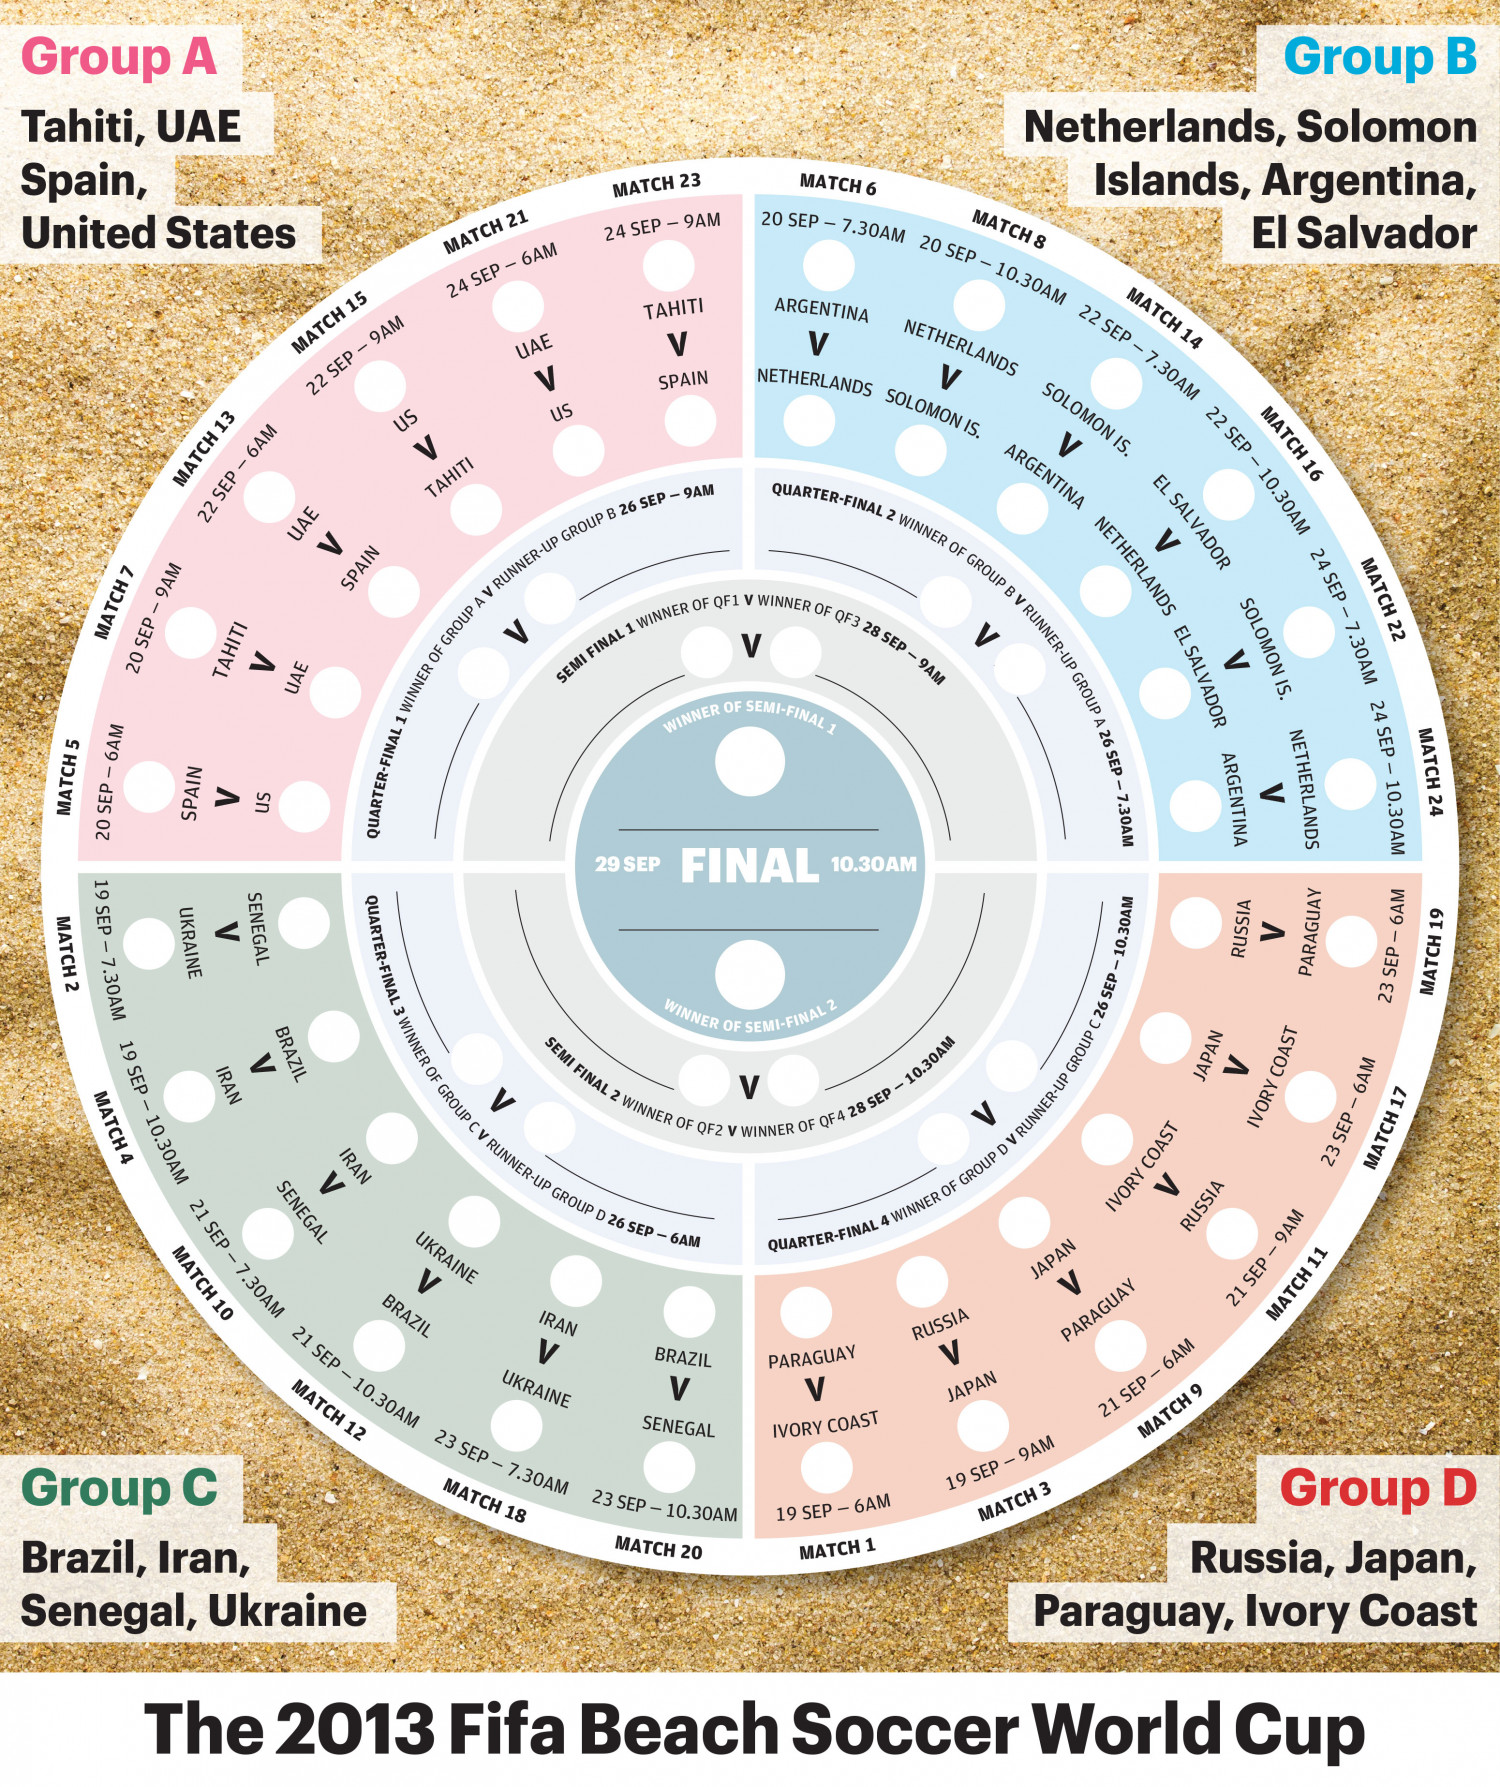 2013 Fifa Beach Soccer World Cup Wallchart Infographic